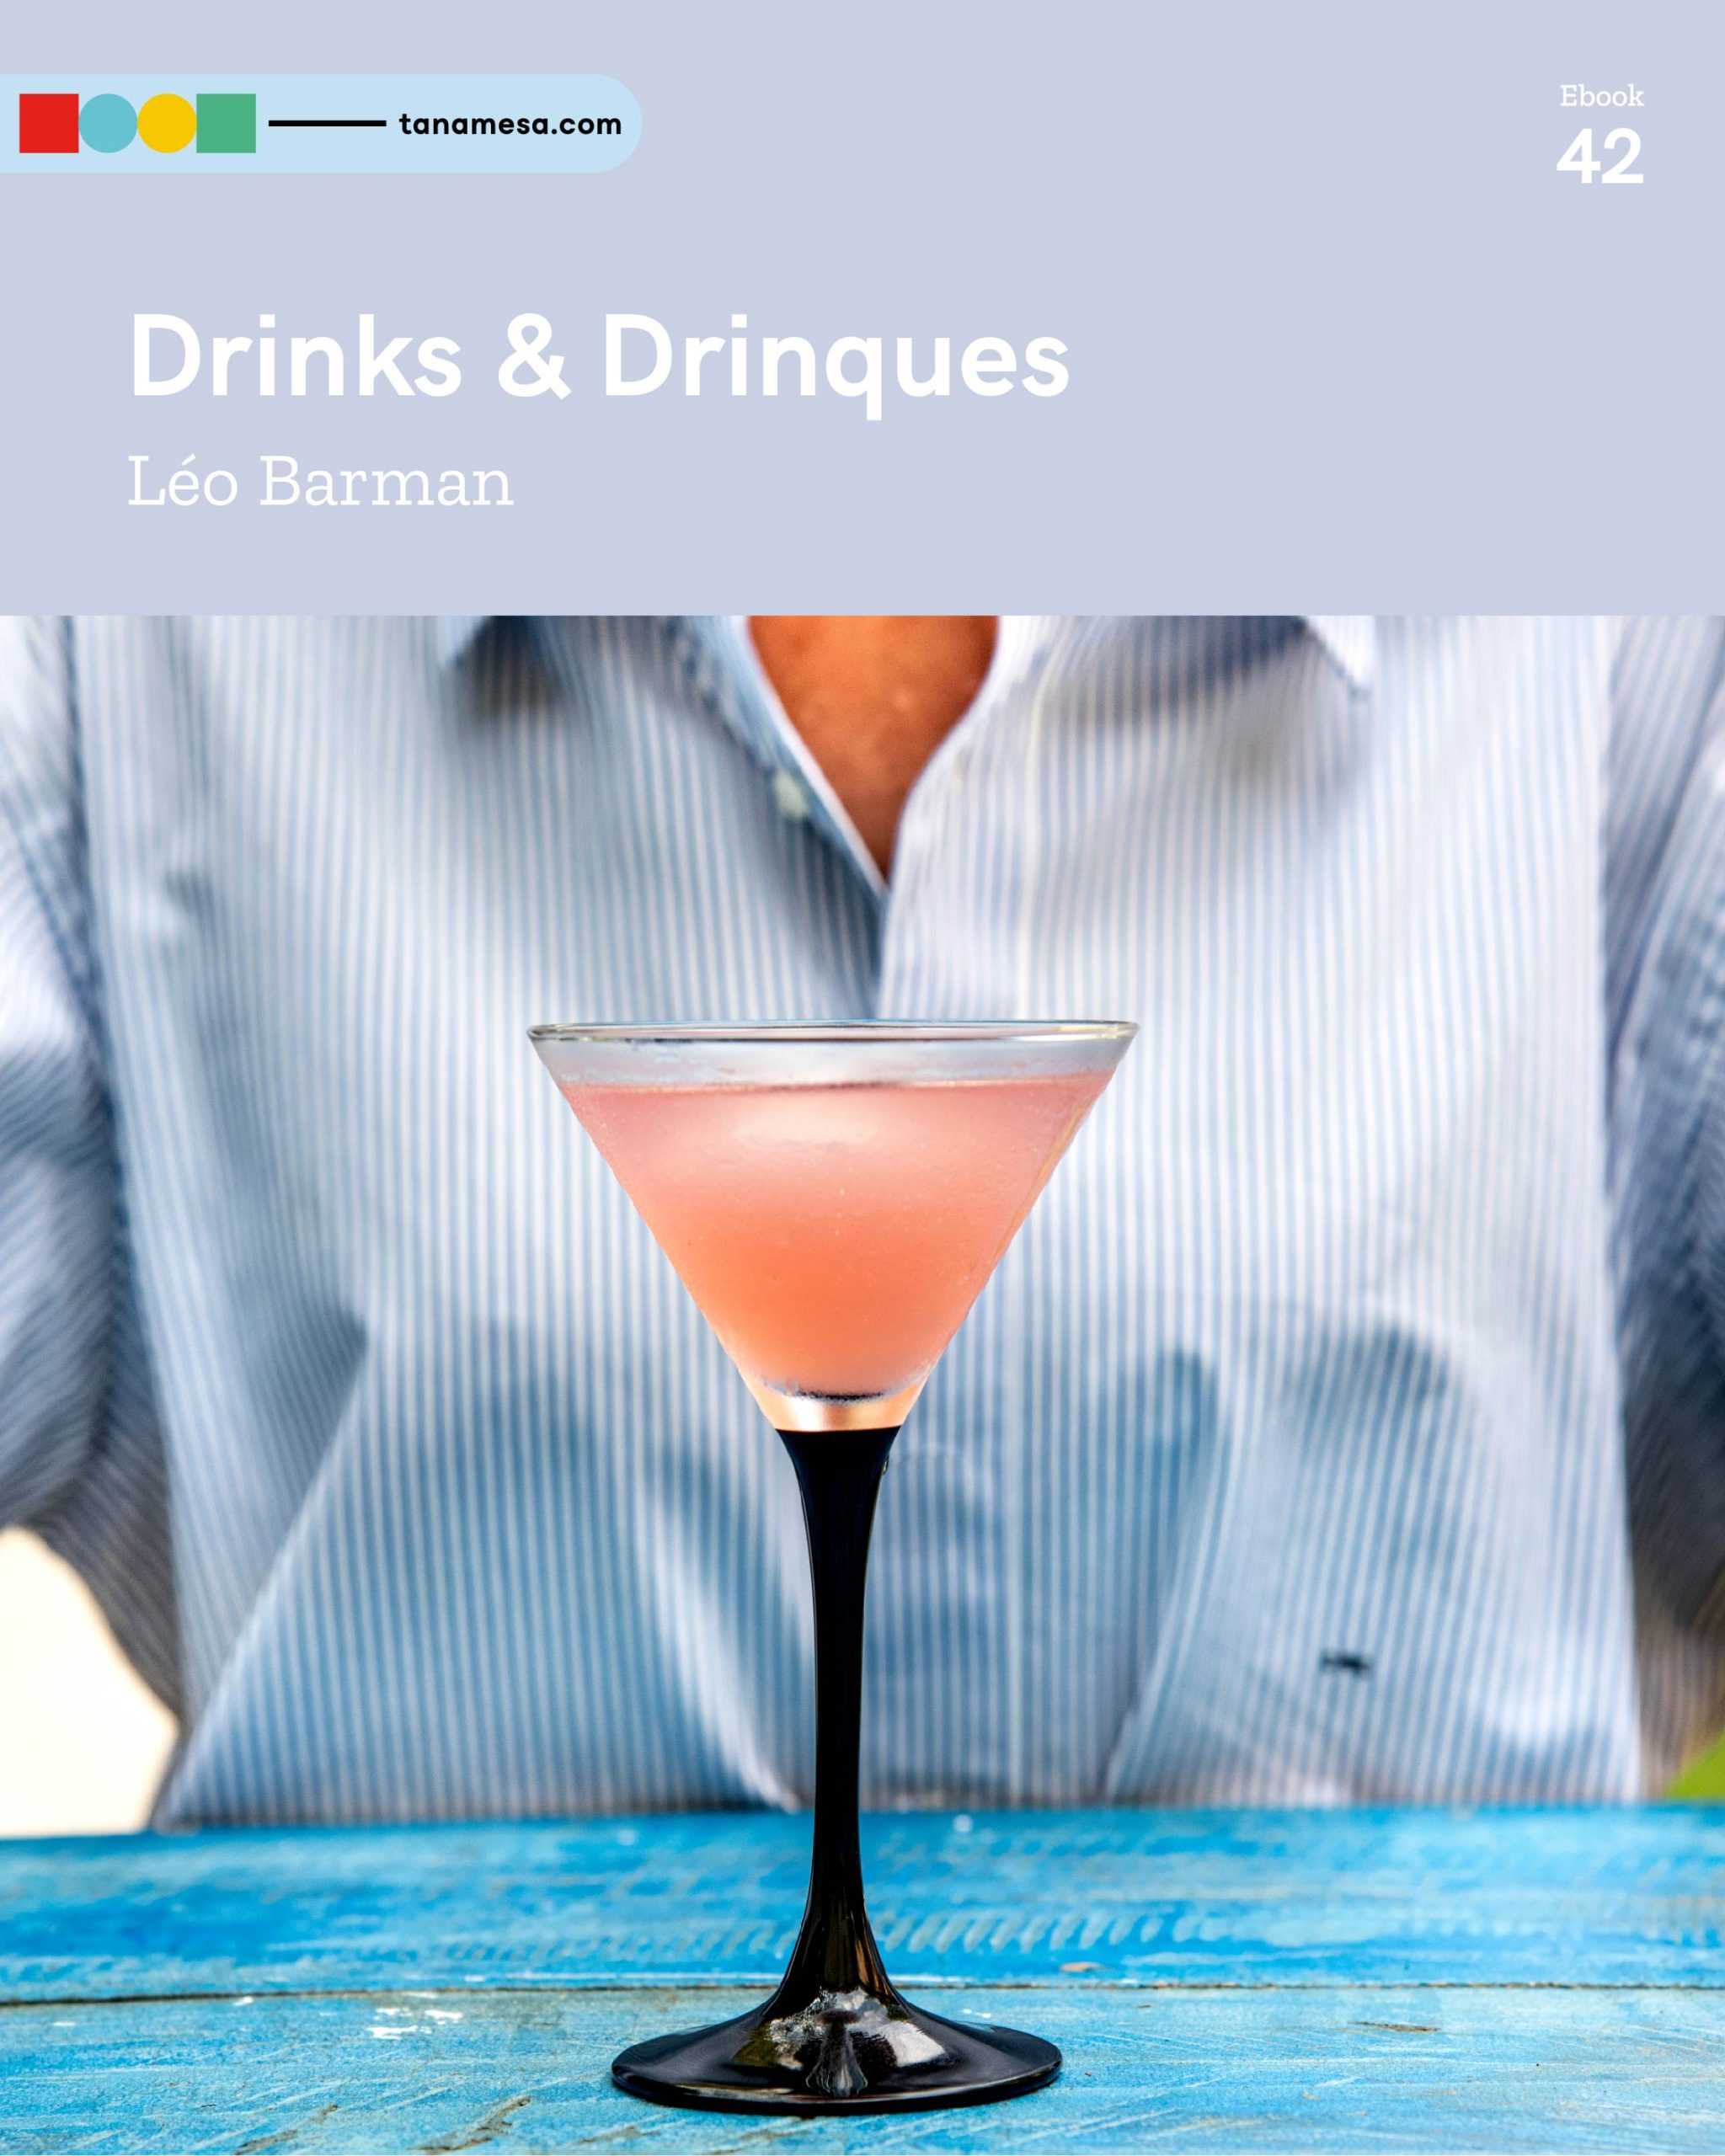 Drinks & Drinques